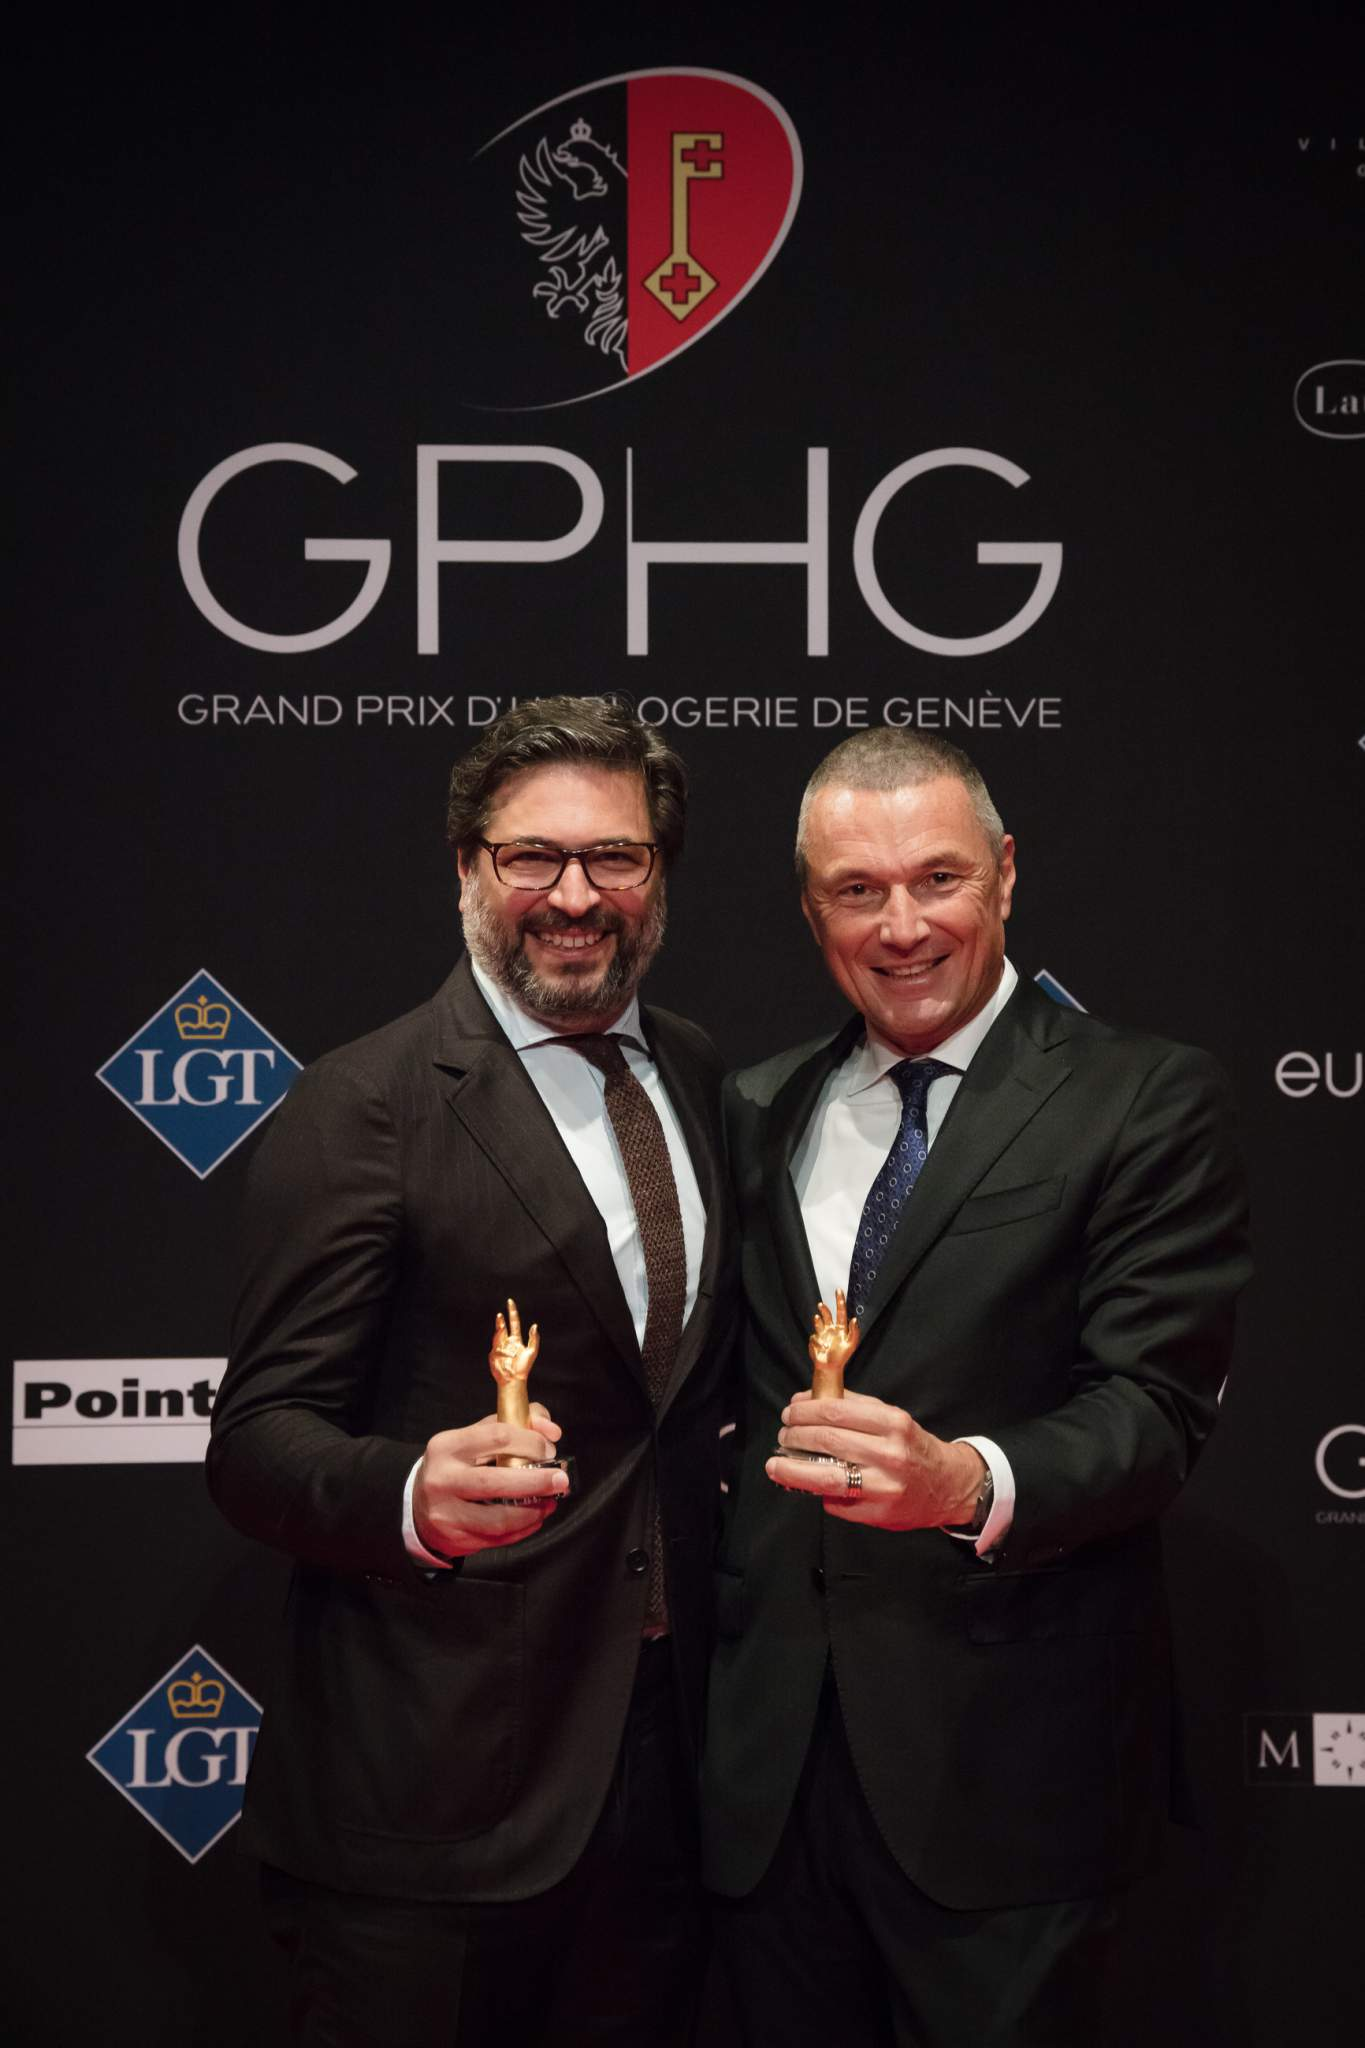 Guido Terreni (General Manager Horlogerie de Bvlgari) and Jean-Christophe Babin (CEO of Bvlgari), winners of the Tourbillon and Escapement Watch Prize 2017 and of the Men's Watch Prize 2017